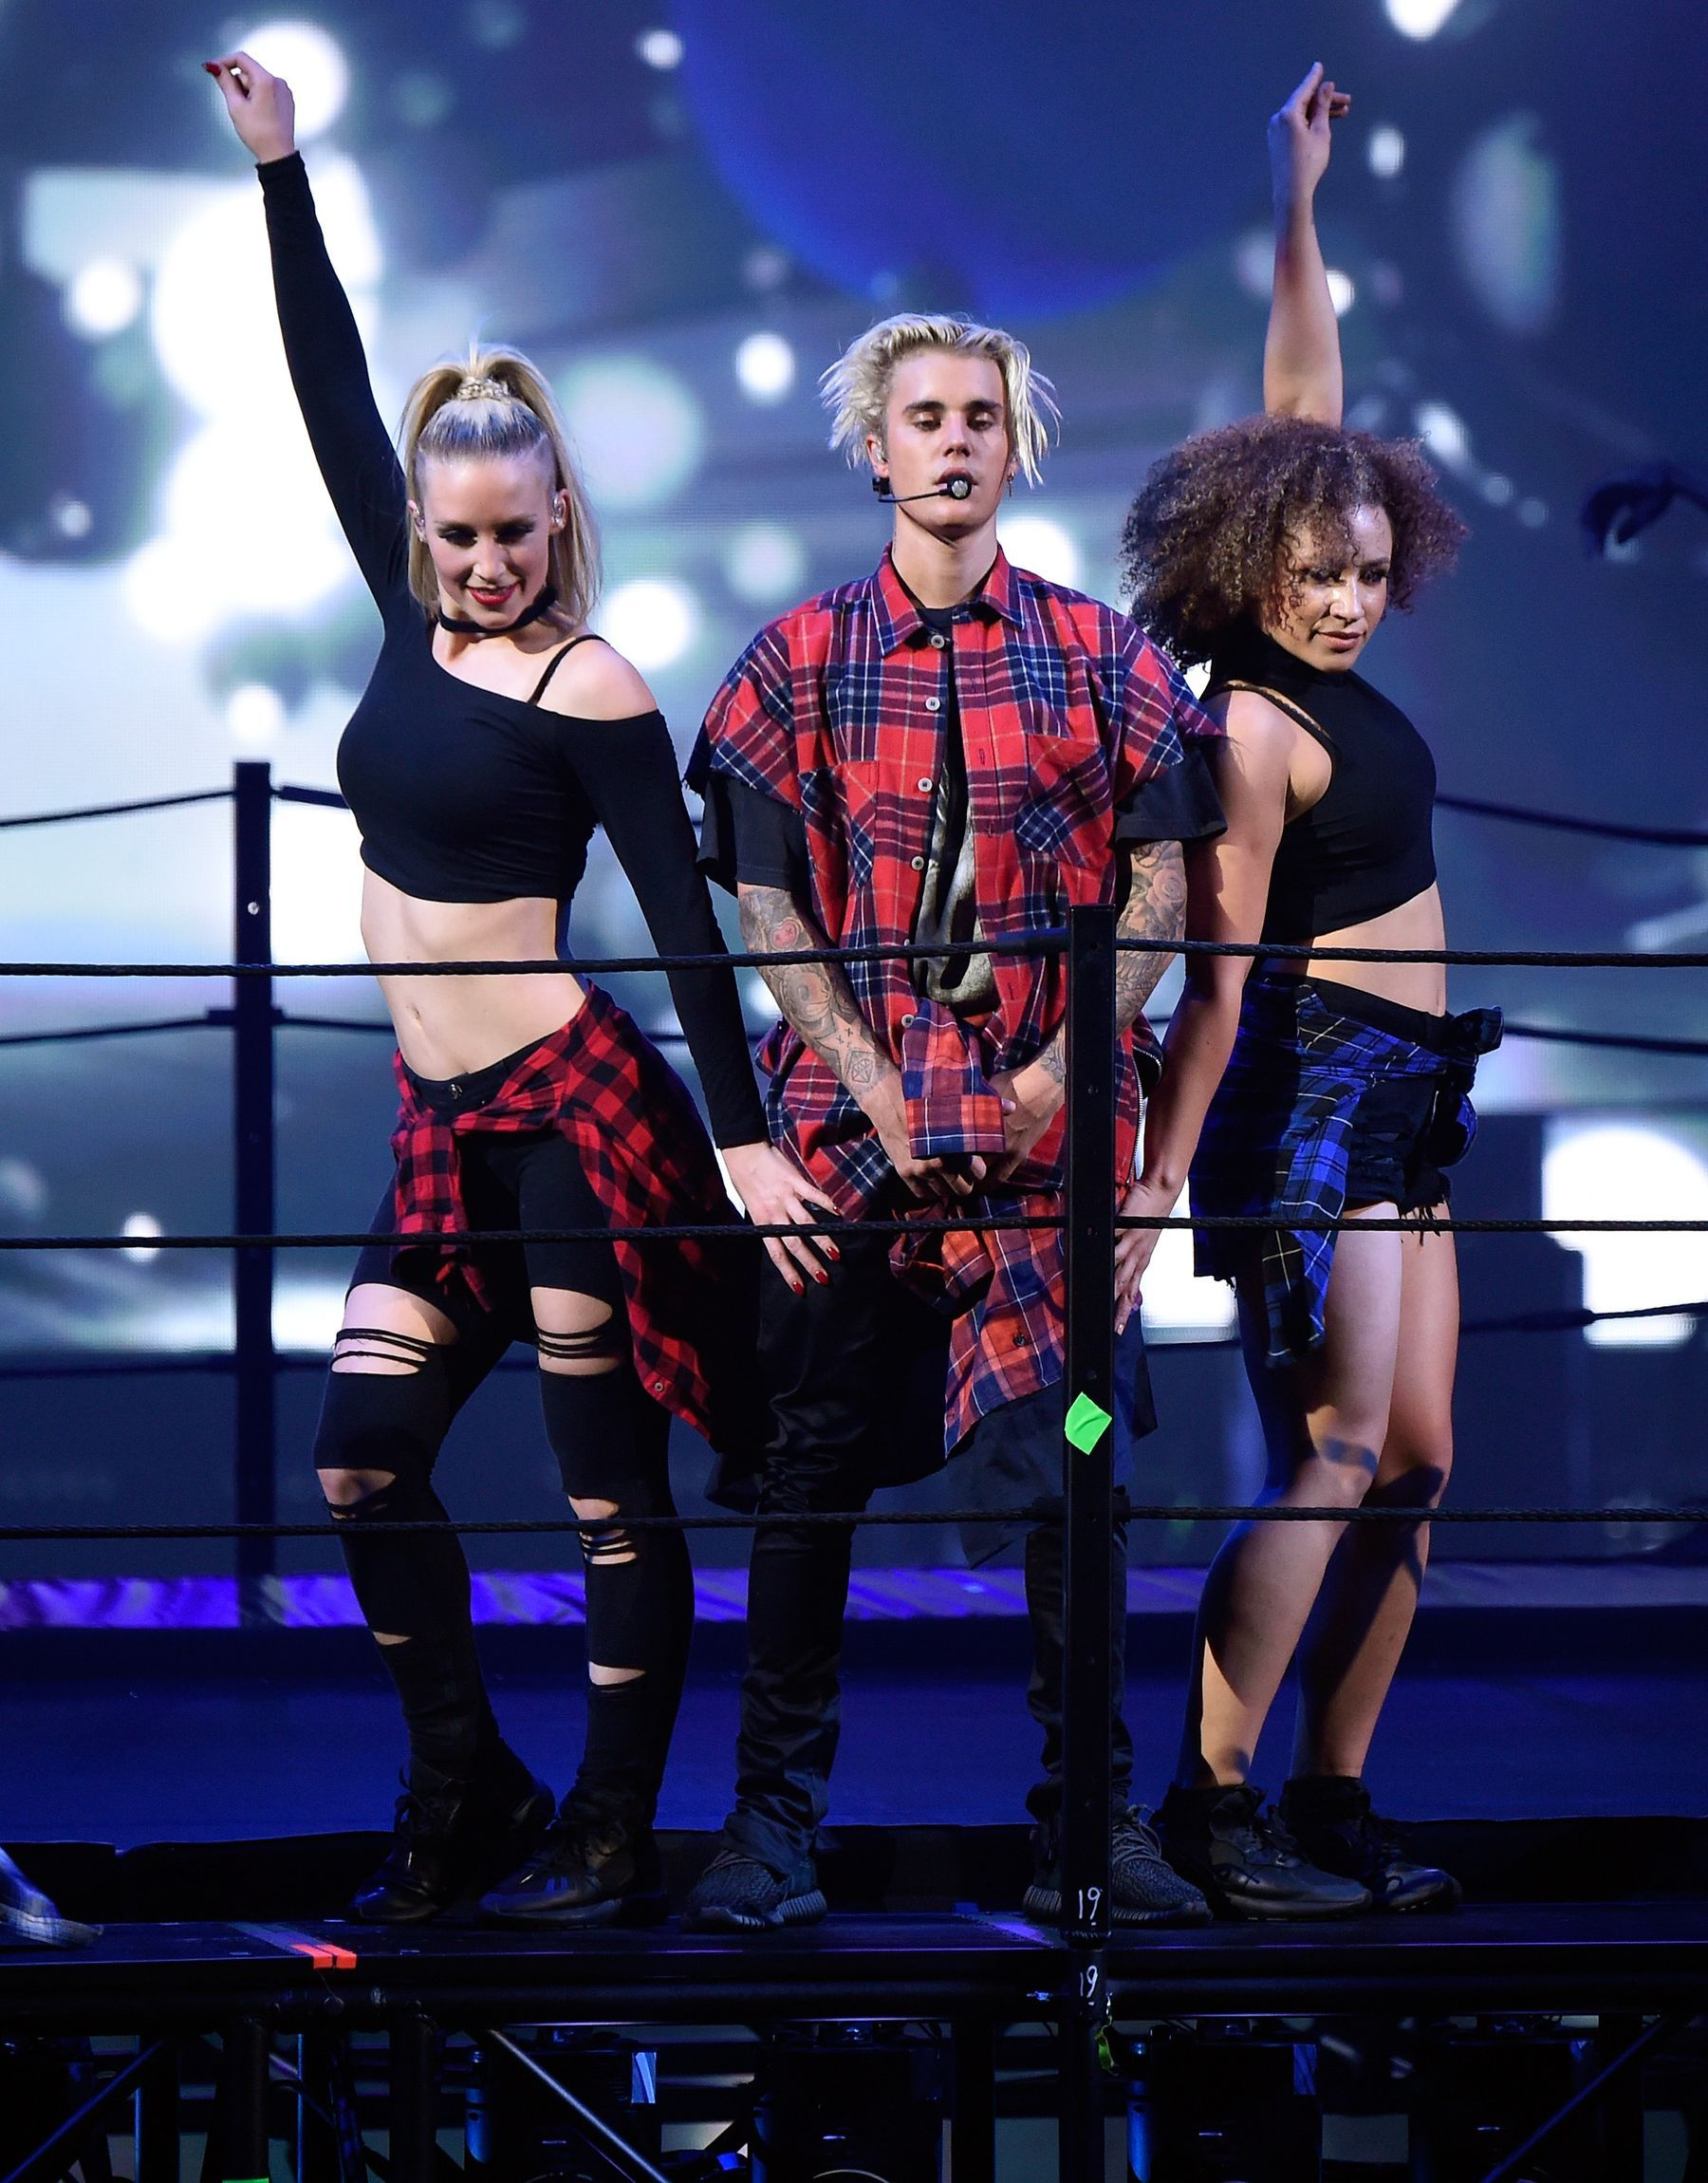 21 Justin Bieber Photos To Help Soothe Your Purpose Tour Fomo Justin Bieber Photos Justin Bieber I Love Justin Bieber